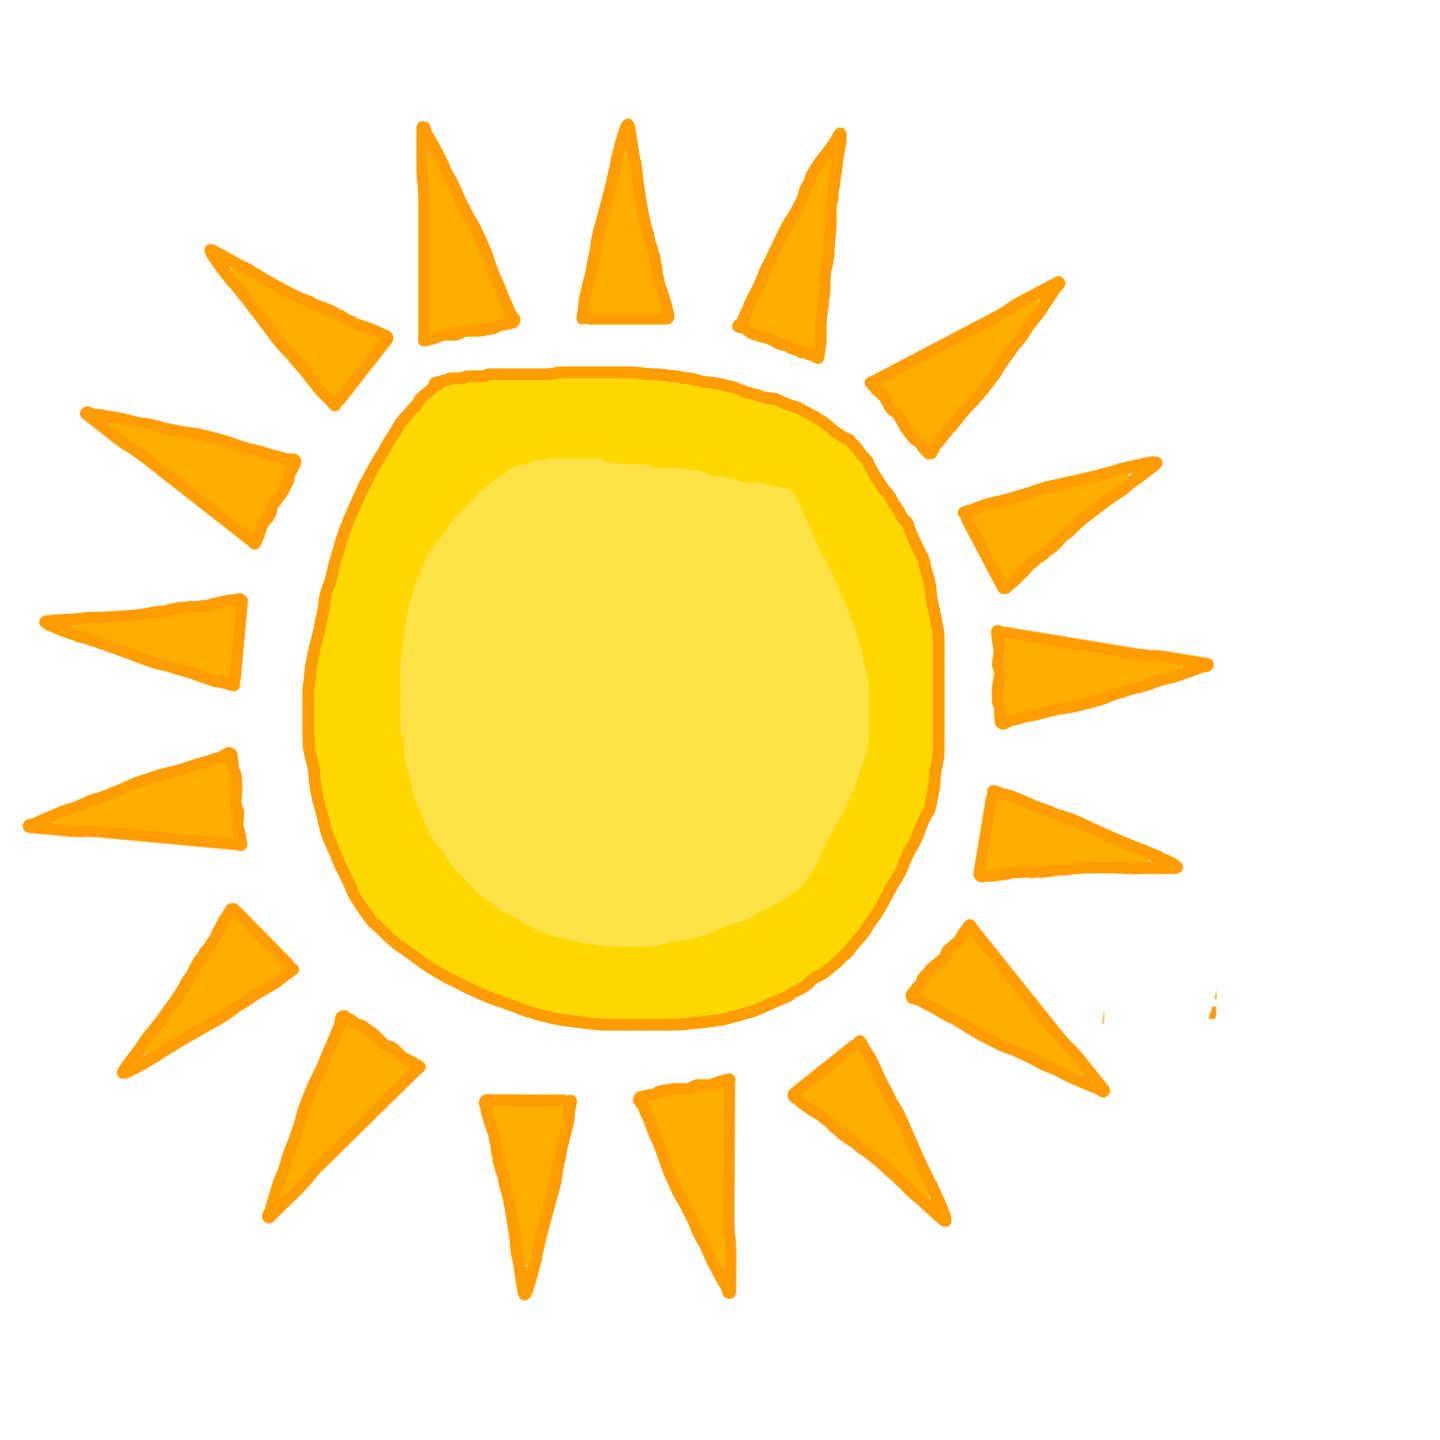 Sun cartoon png. Happy no background transparent